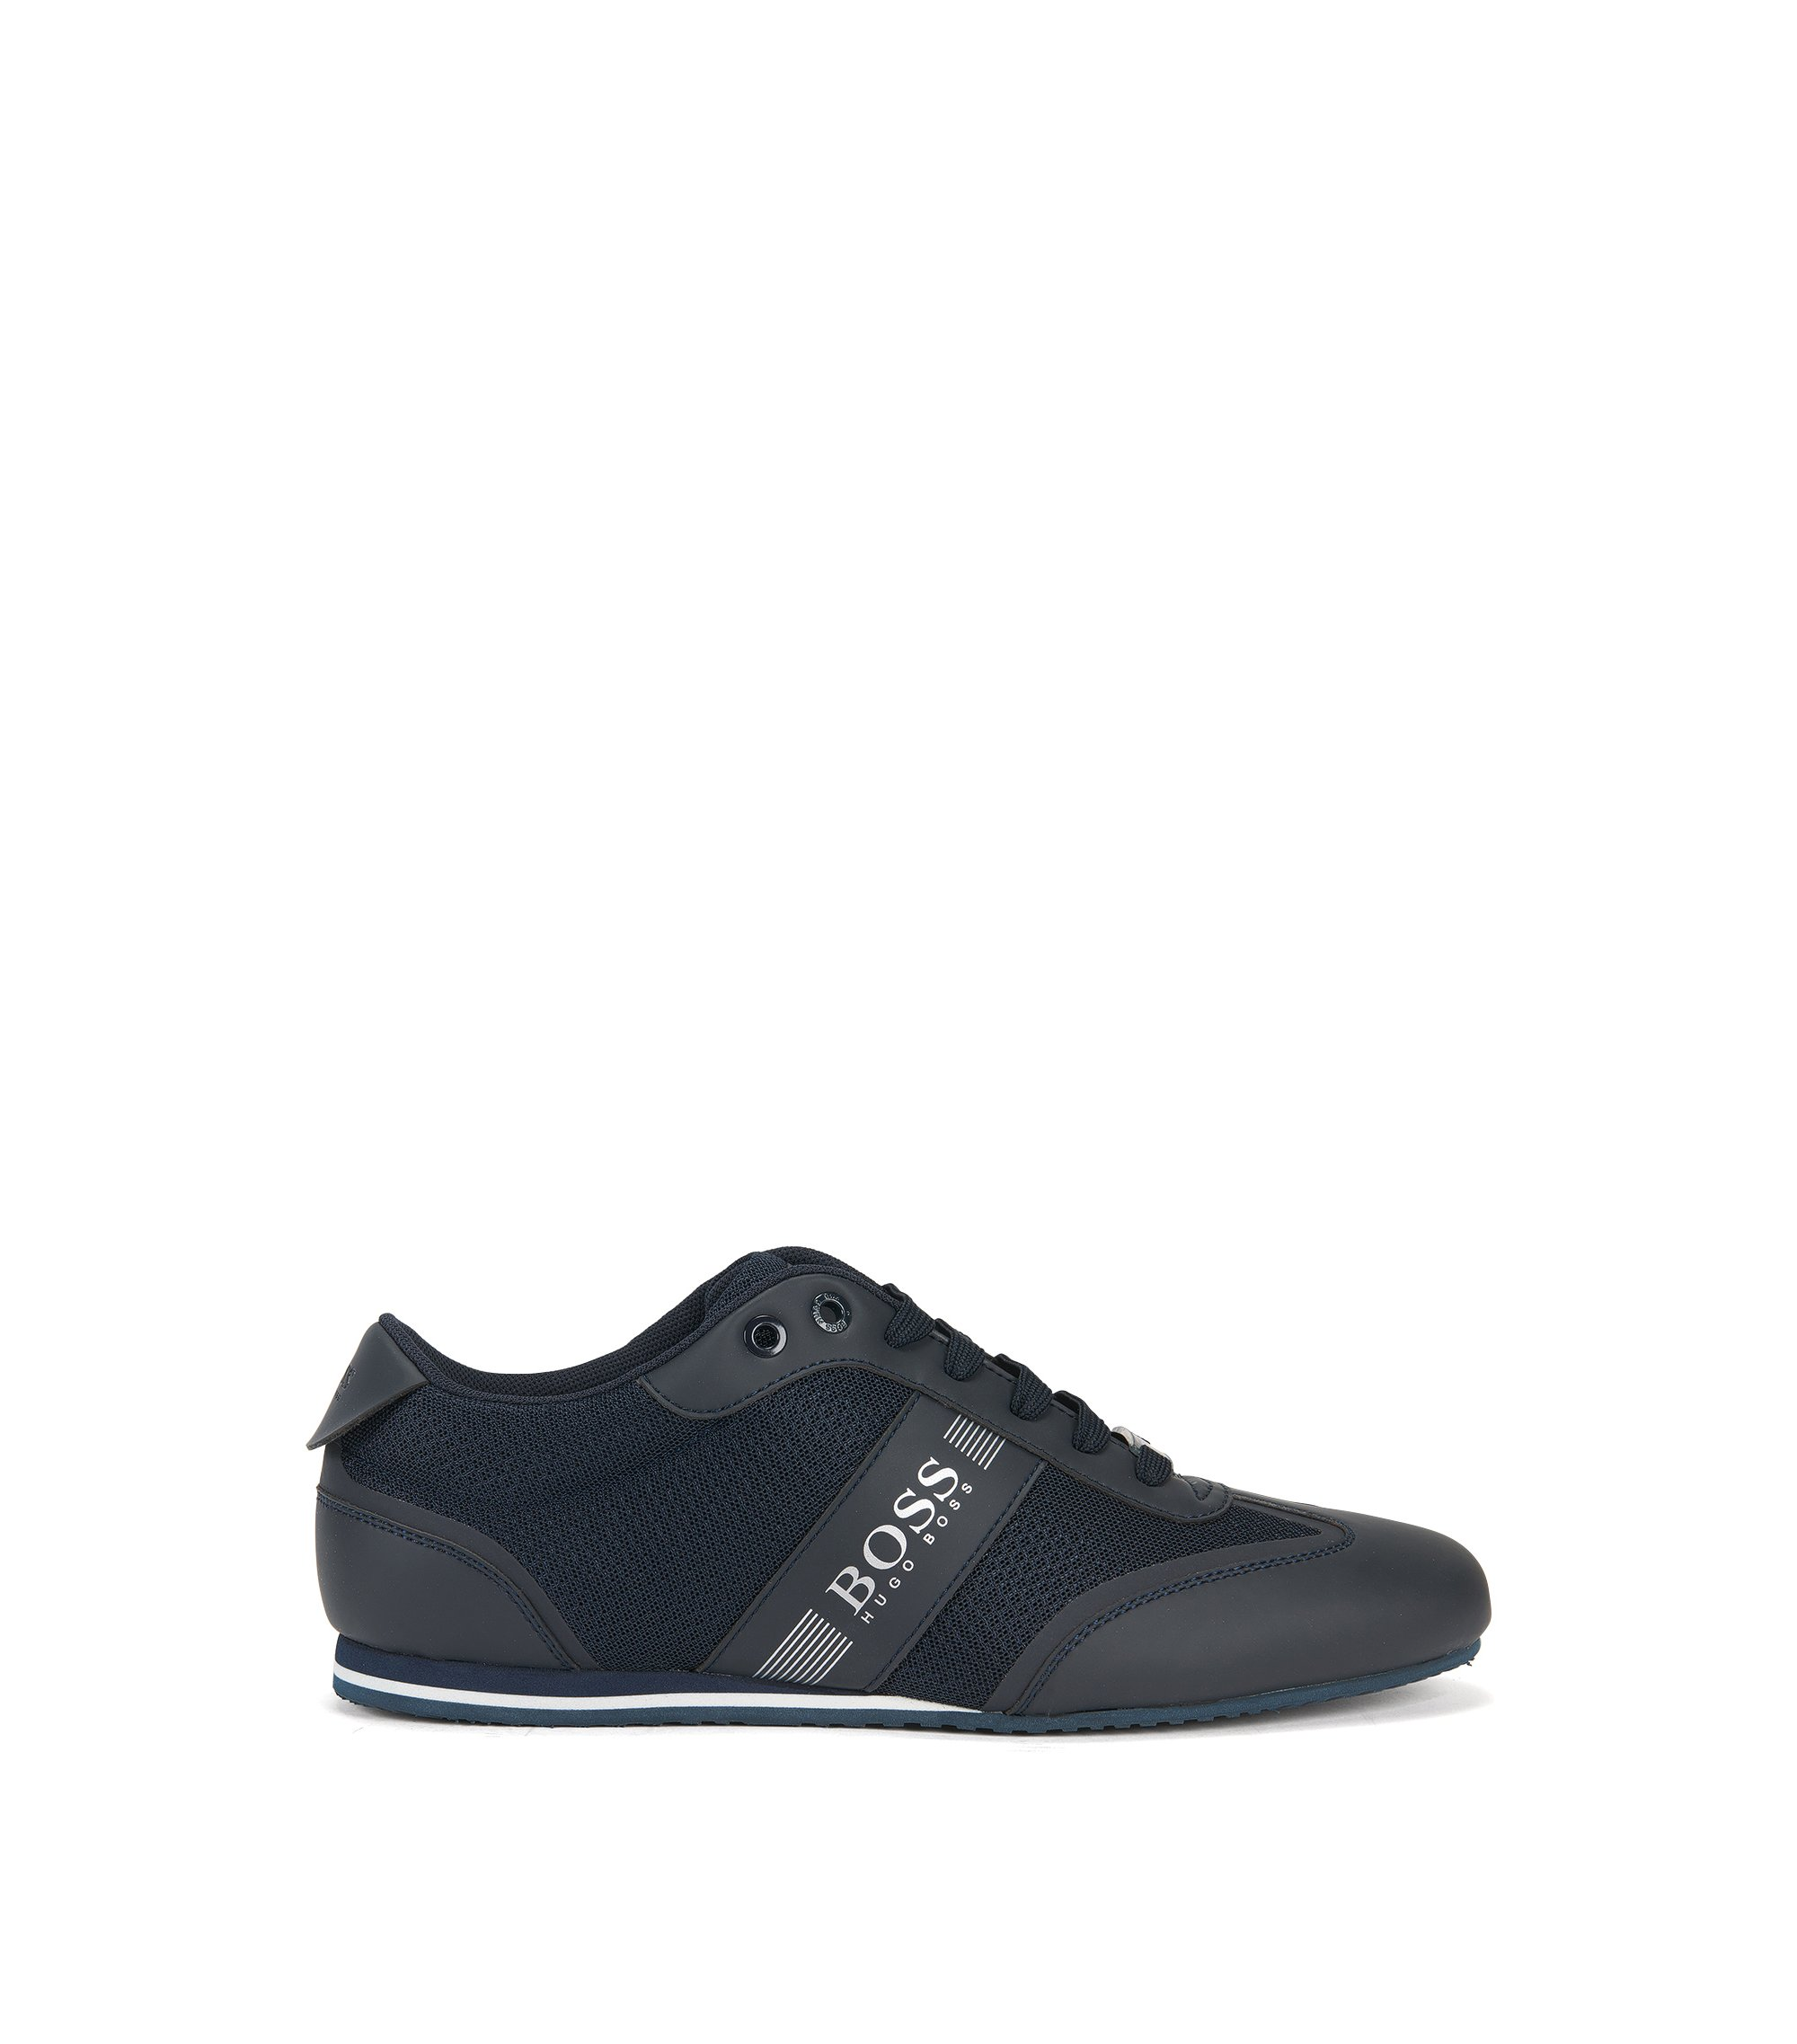 Shuttle_Tenn_lux, Sneakers Basses Homme, Noir (Black), 43 EUBoss Green by Hugo Boss